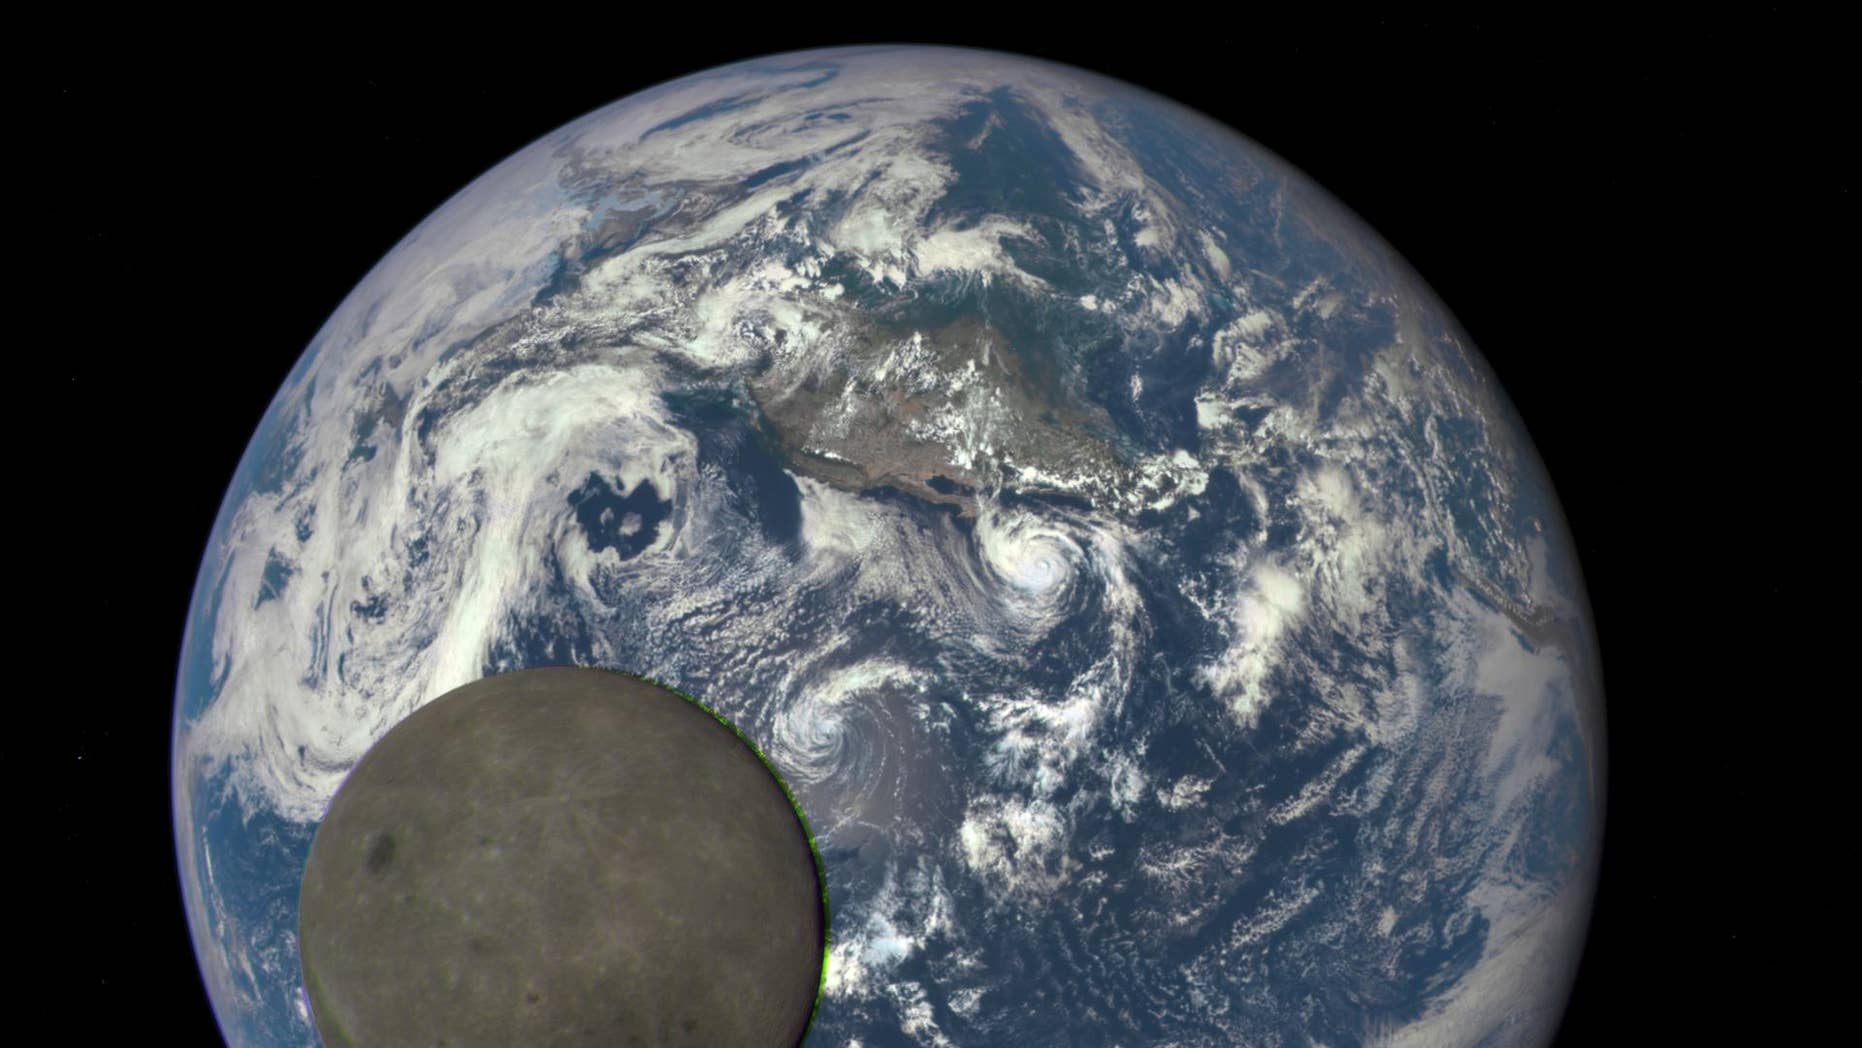 The length of Earth's day is slowing down at a glacial pace of 1.8 milliseconds every 100 years. This image shows the Earth and moon as seen by NASA's Deep Space Climate Observatory satellite 1 million miles away.